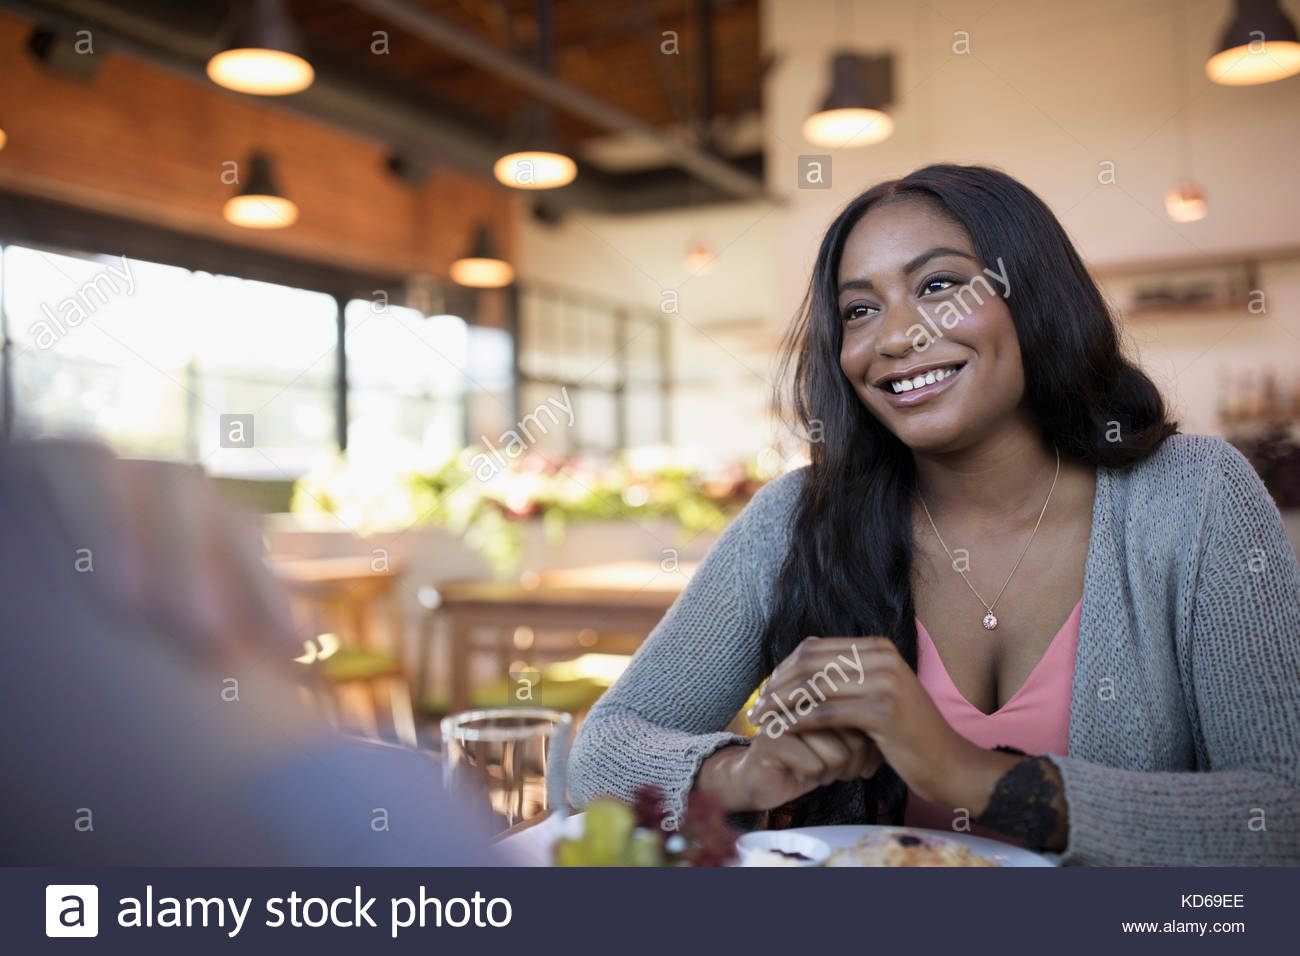 Smiling woman dîner au restaurant table Photo Stock